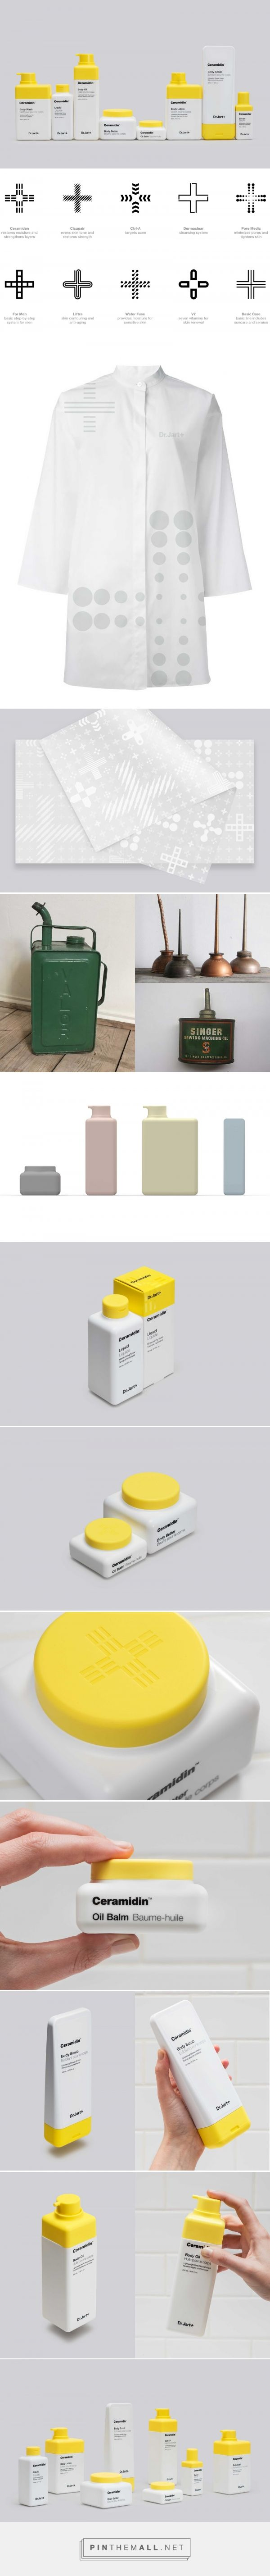 Dr. Jart+ packaging design by Pentagram - http://www.packagingoftheworld.com/2018/02/dr-jart.html